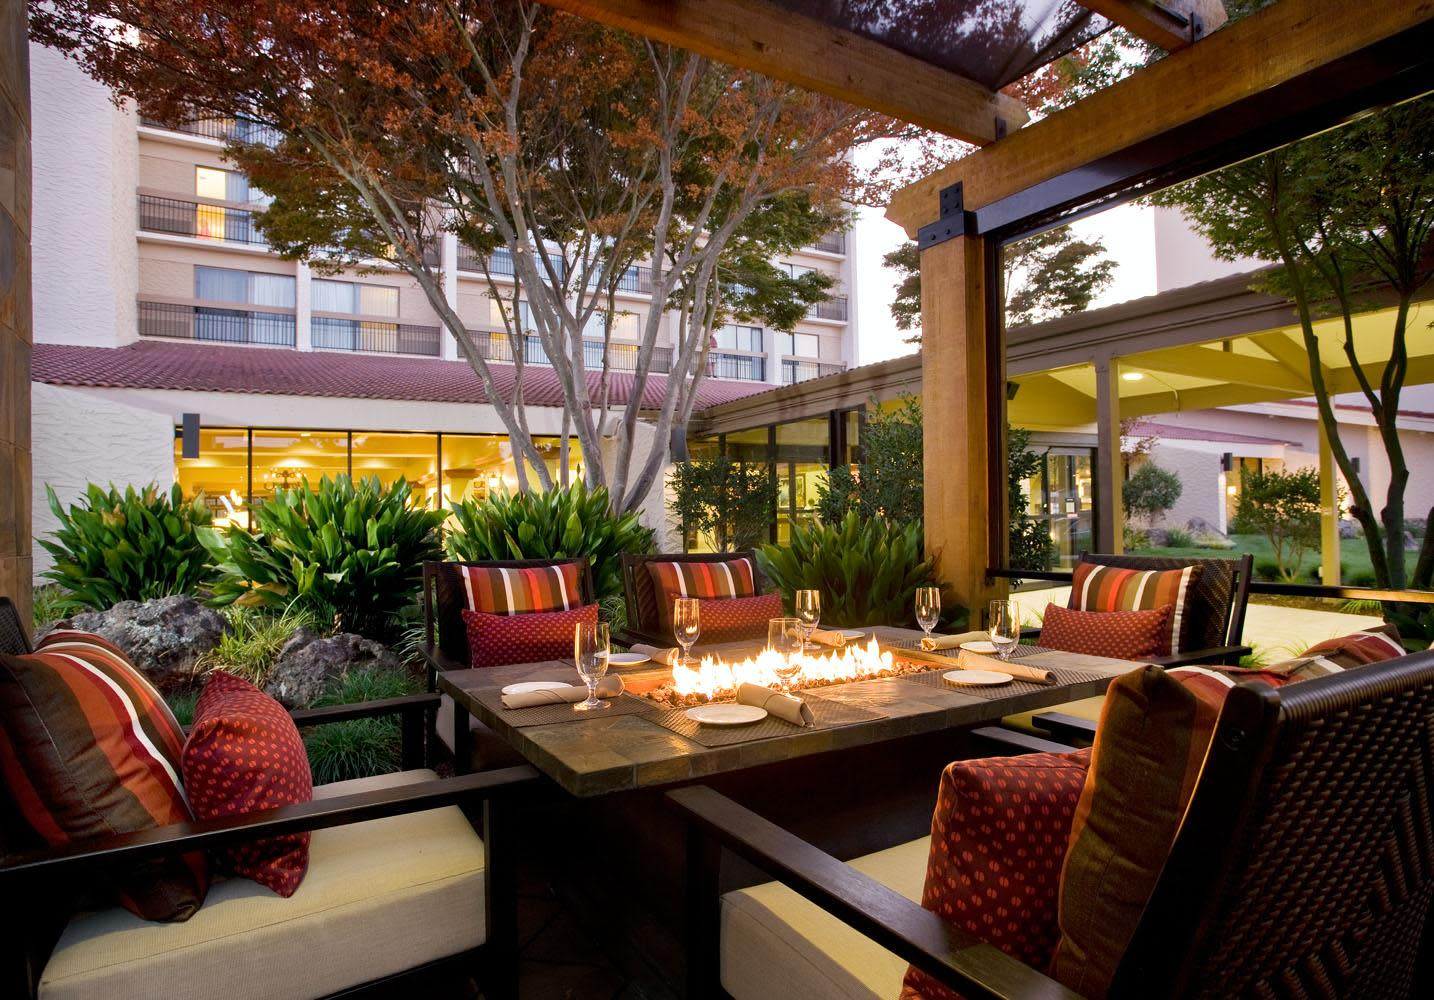 Outdoor Patio with Fire pits at Parcel 104